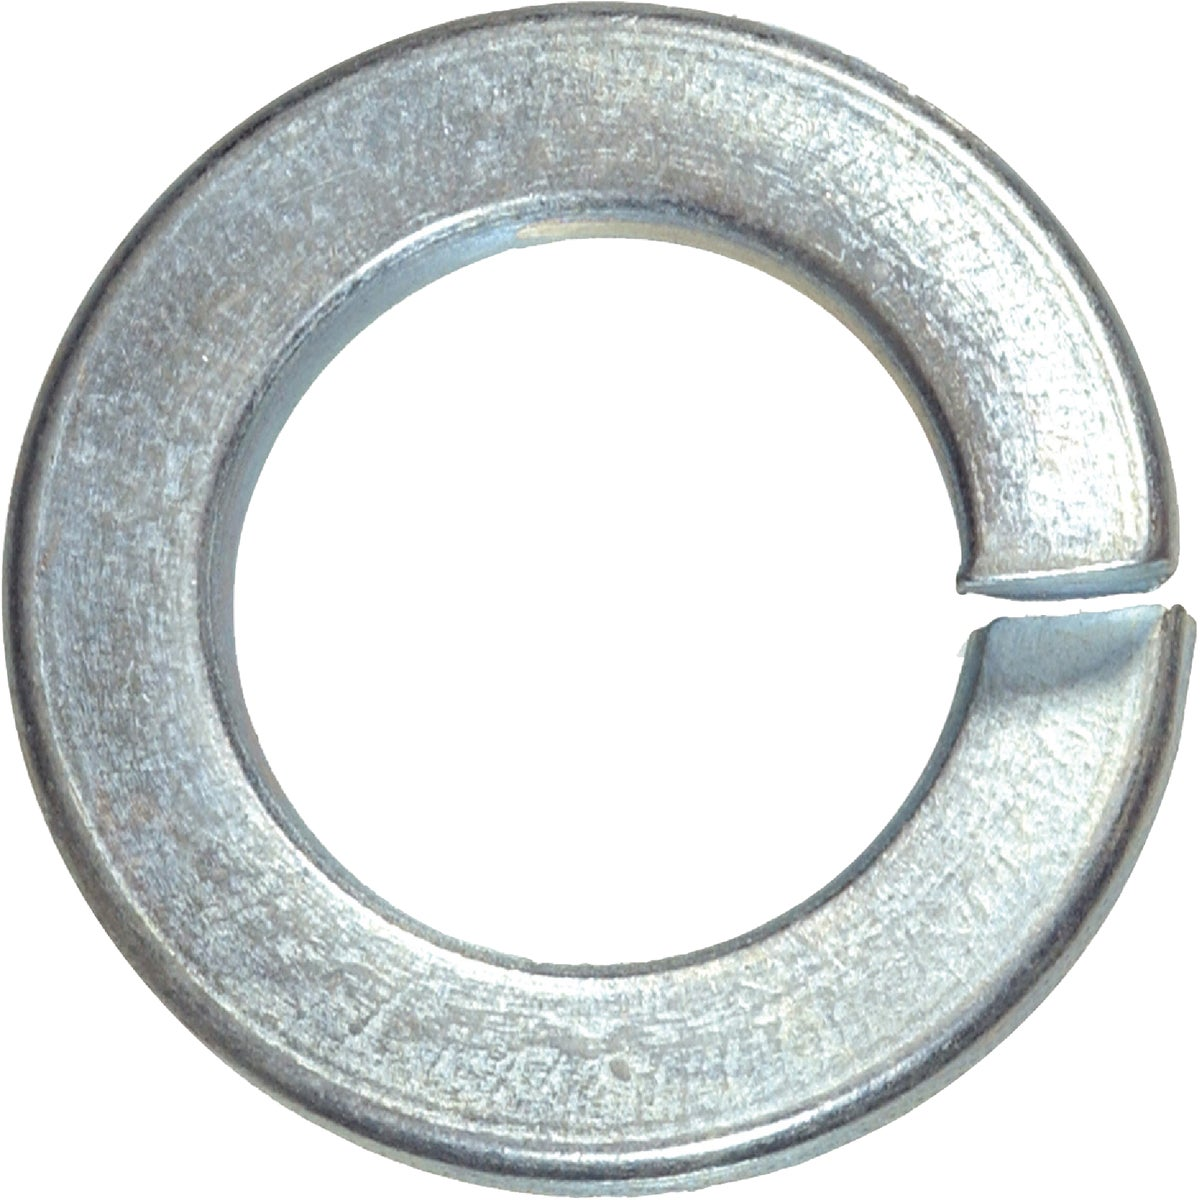 "5/16"" STEEL LOCK WASHER - 6609 by Hillman Fastener"